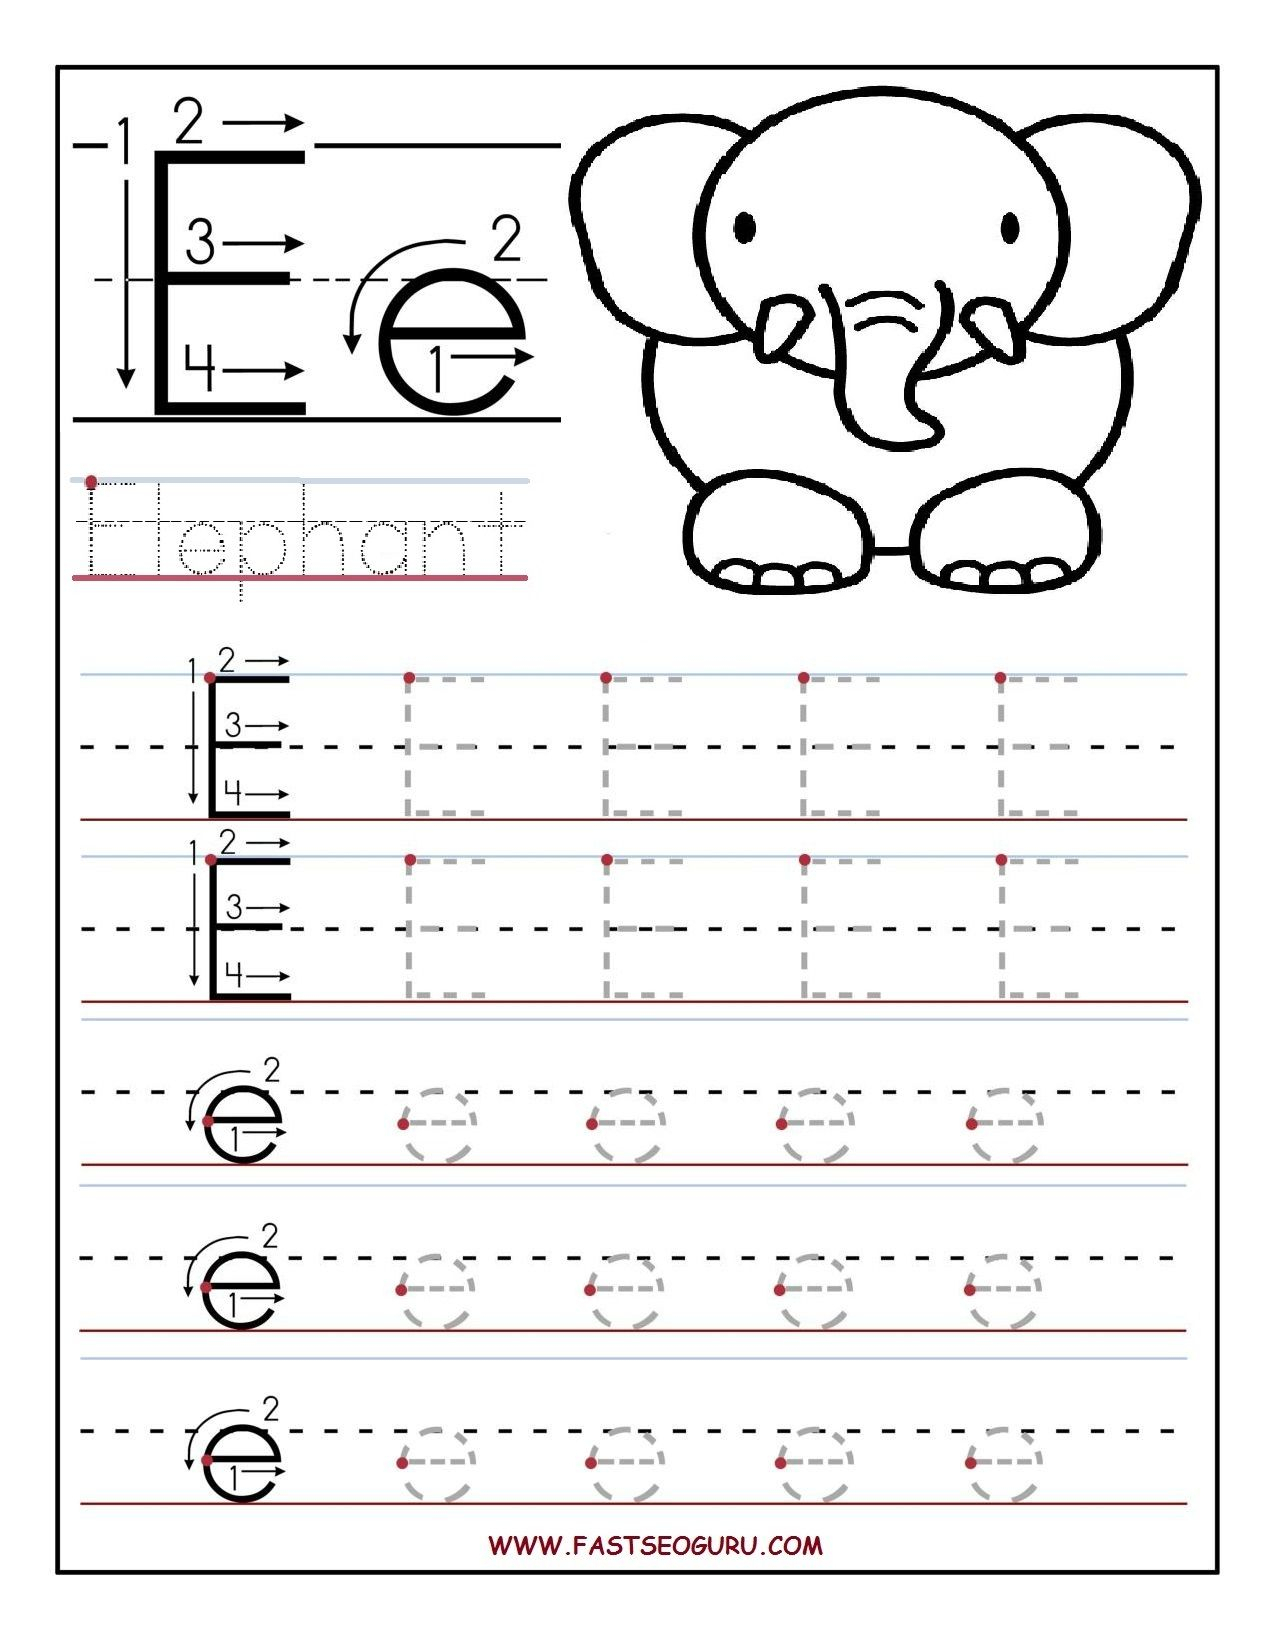 Letter E Tracing Worksheets | TracingLettersWorksheets.com